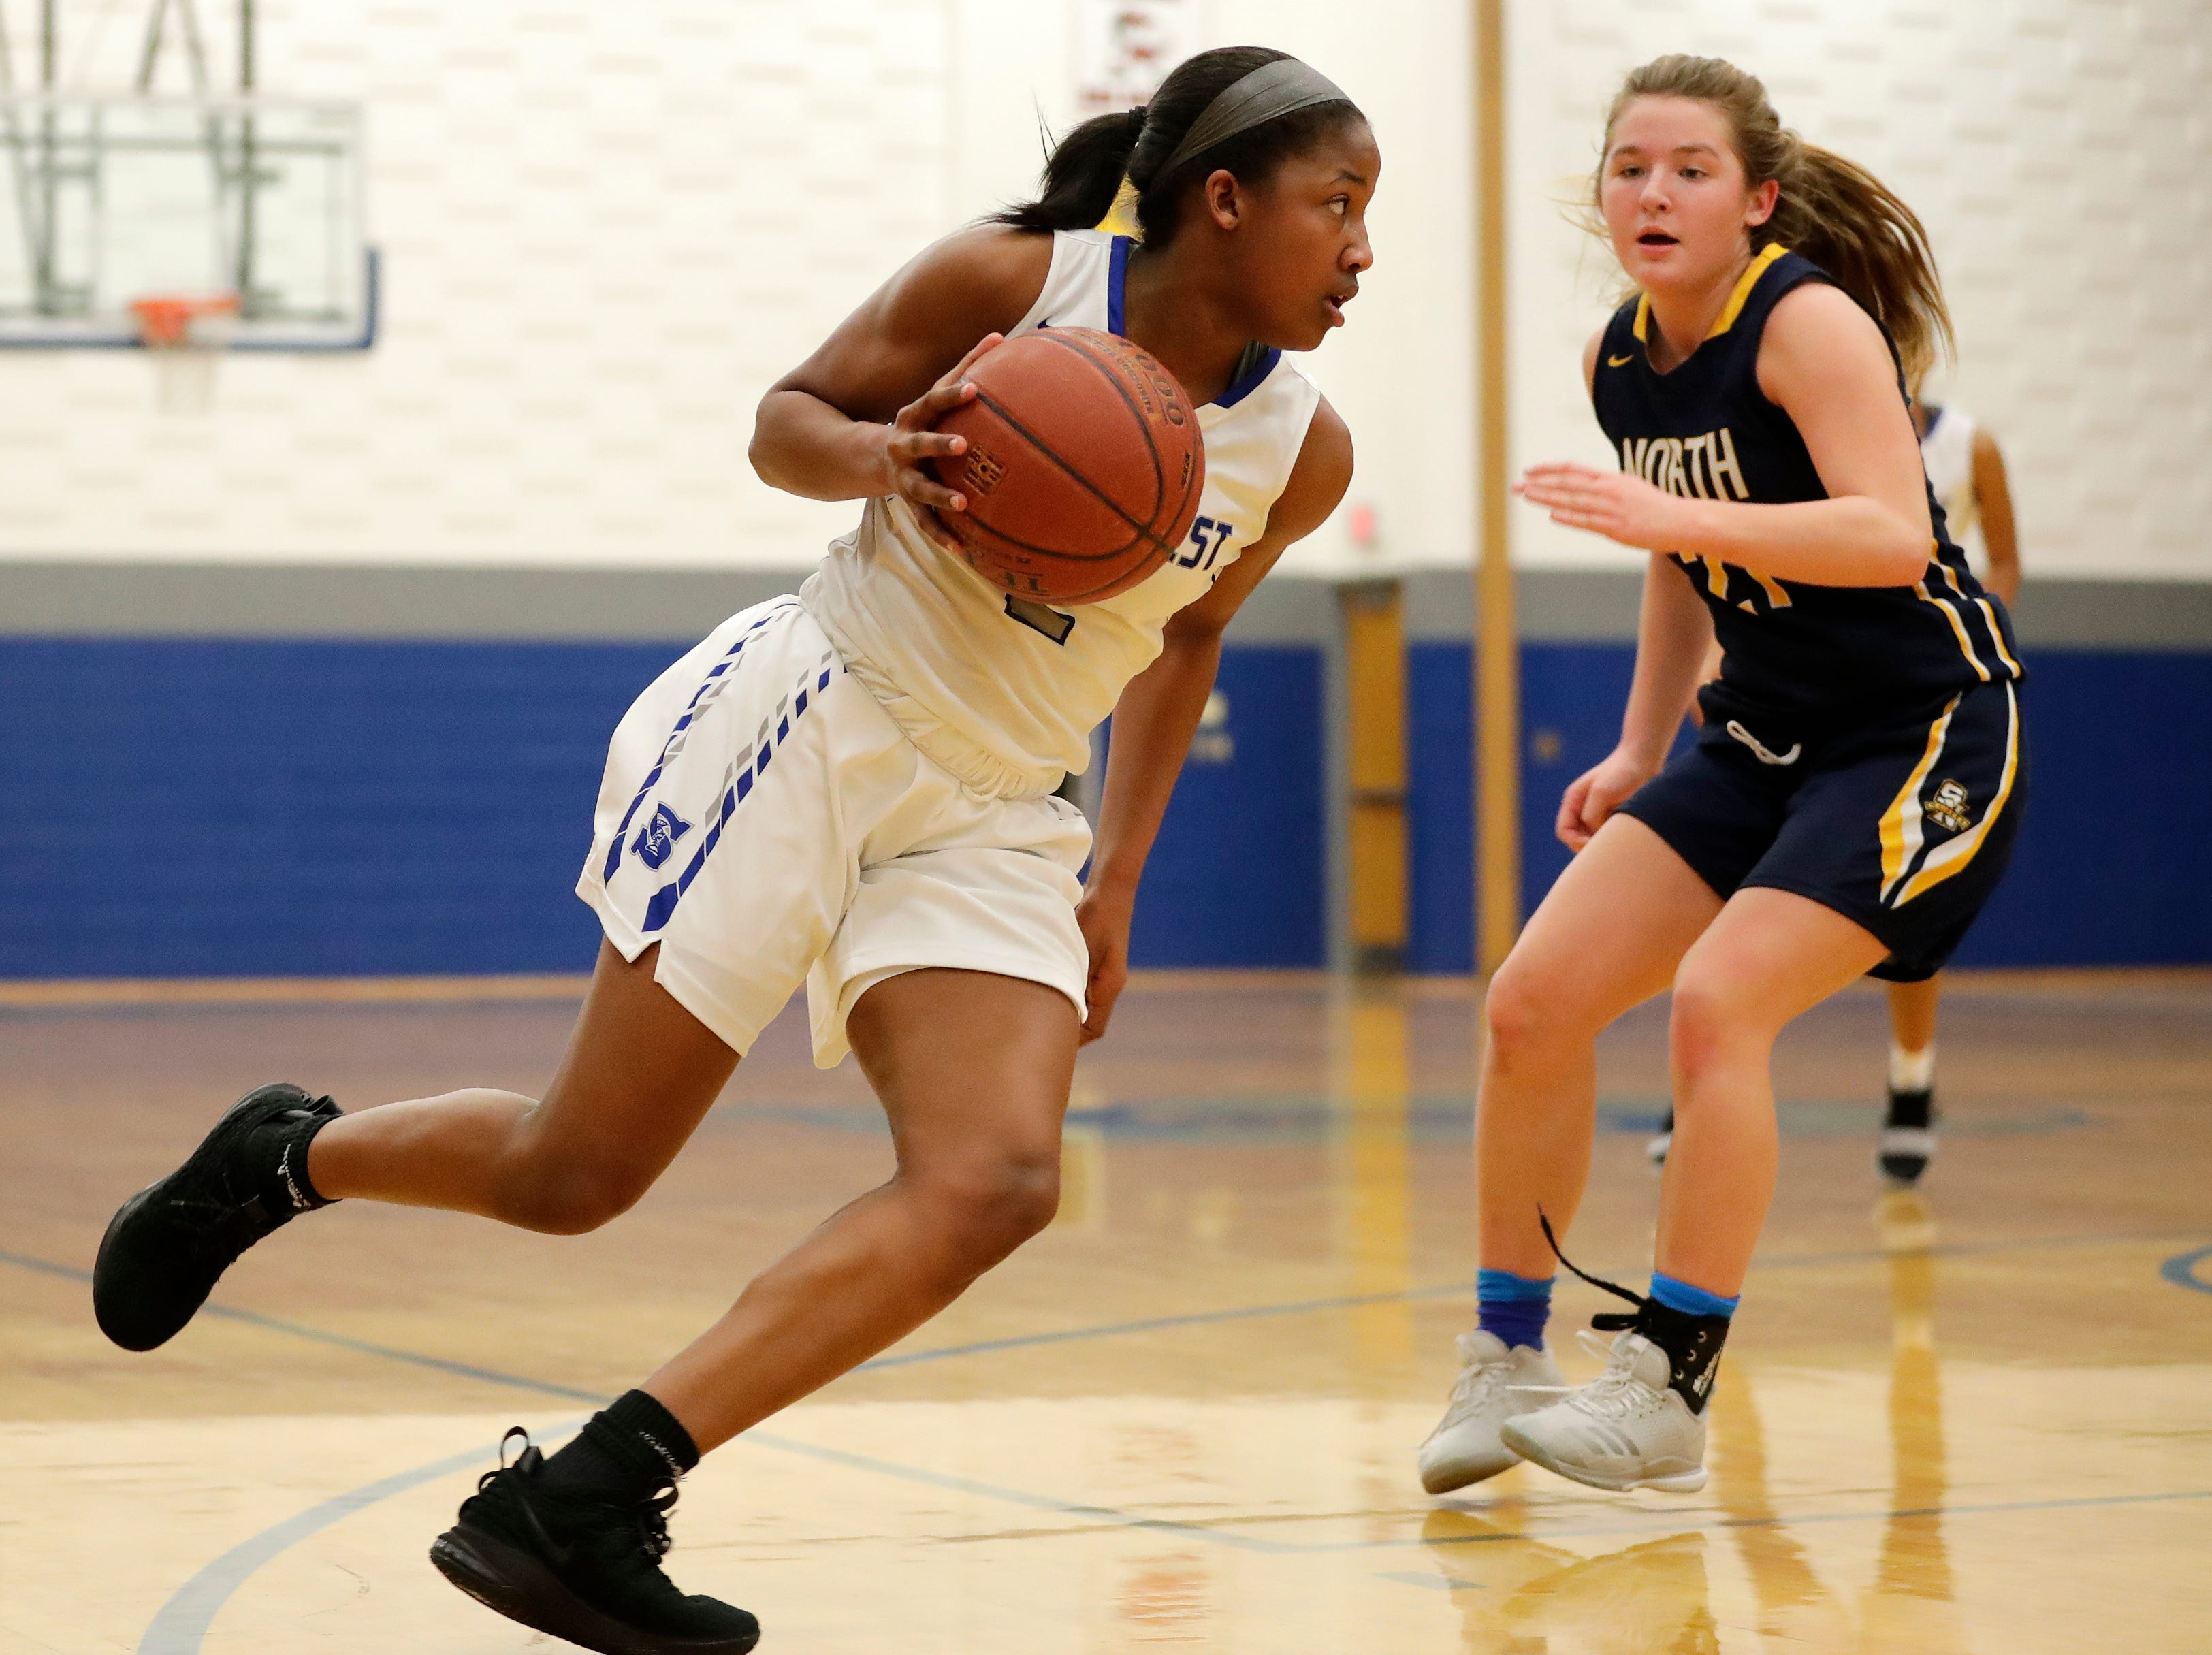 Green Bay Southwest's Jaddan Simmons (2) dribbles against Sheboygan North in a girls basketball game at Southwest High School on Tuesday, February 5, 2019 in Green Bay, Wis.